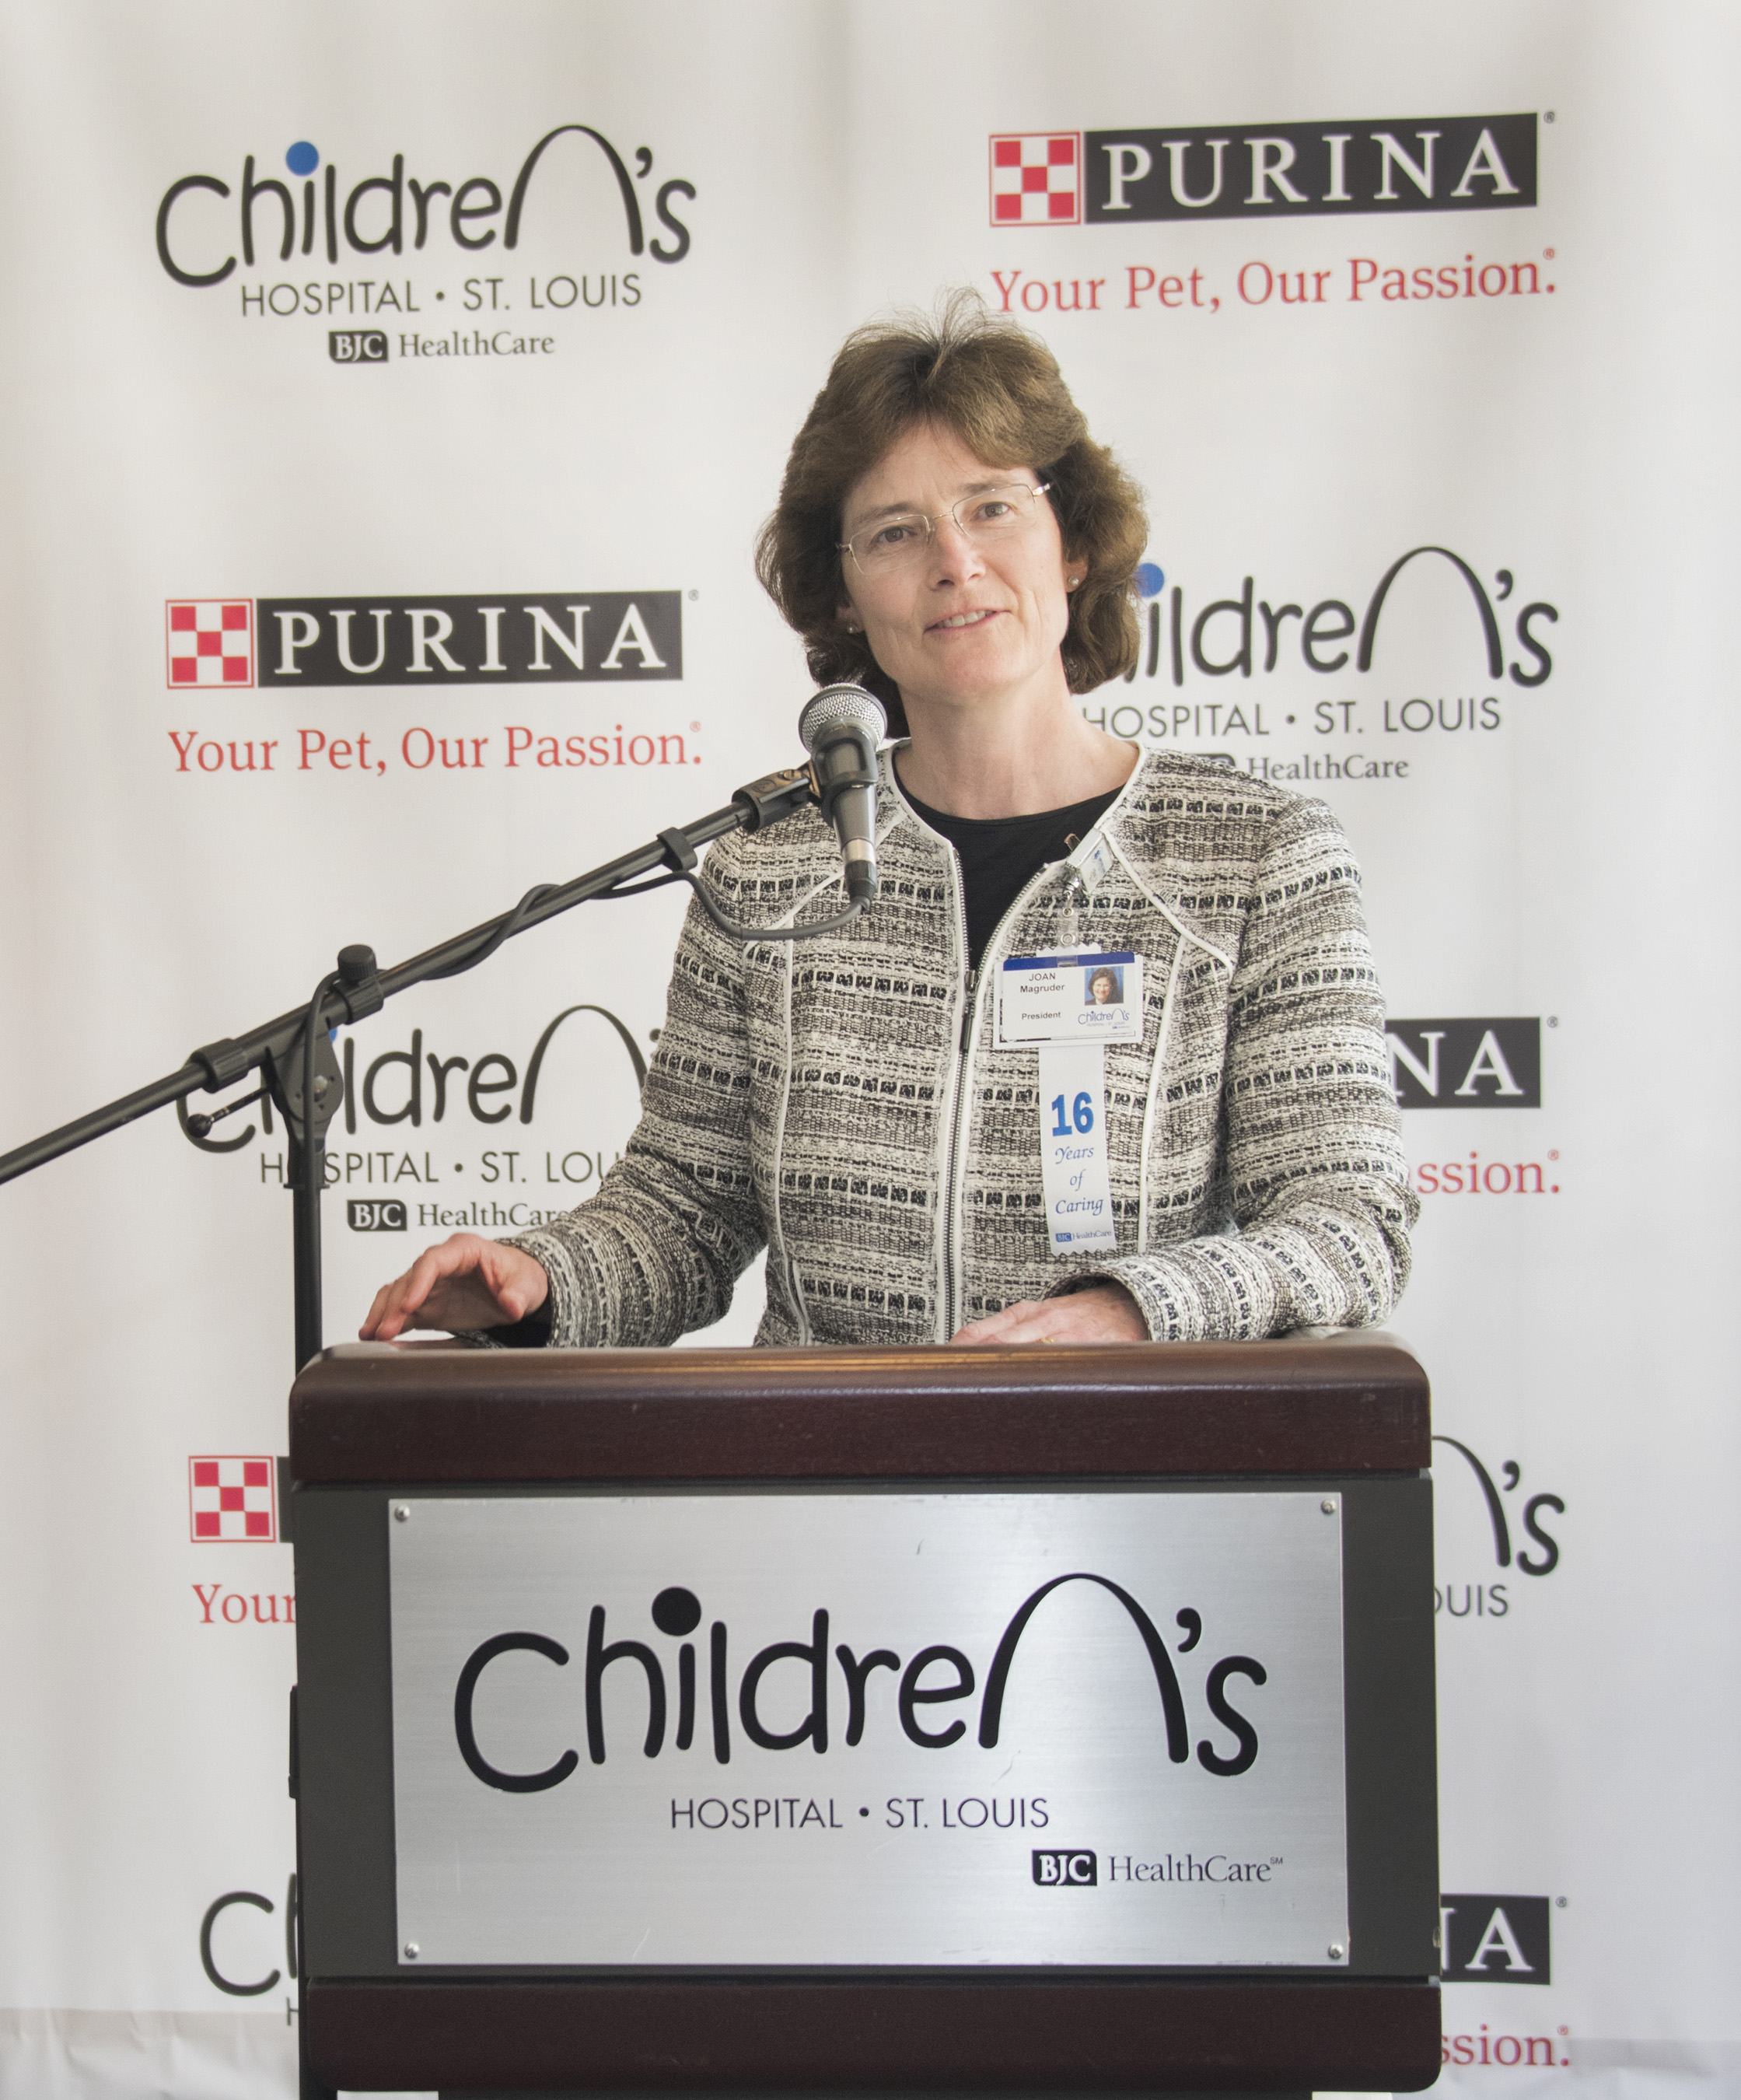 St. Louis Children's Hospital President Joan Magruder discusses the hospital's shared belief with Purina that pets make our lives better and can aid patients' healing process.